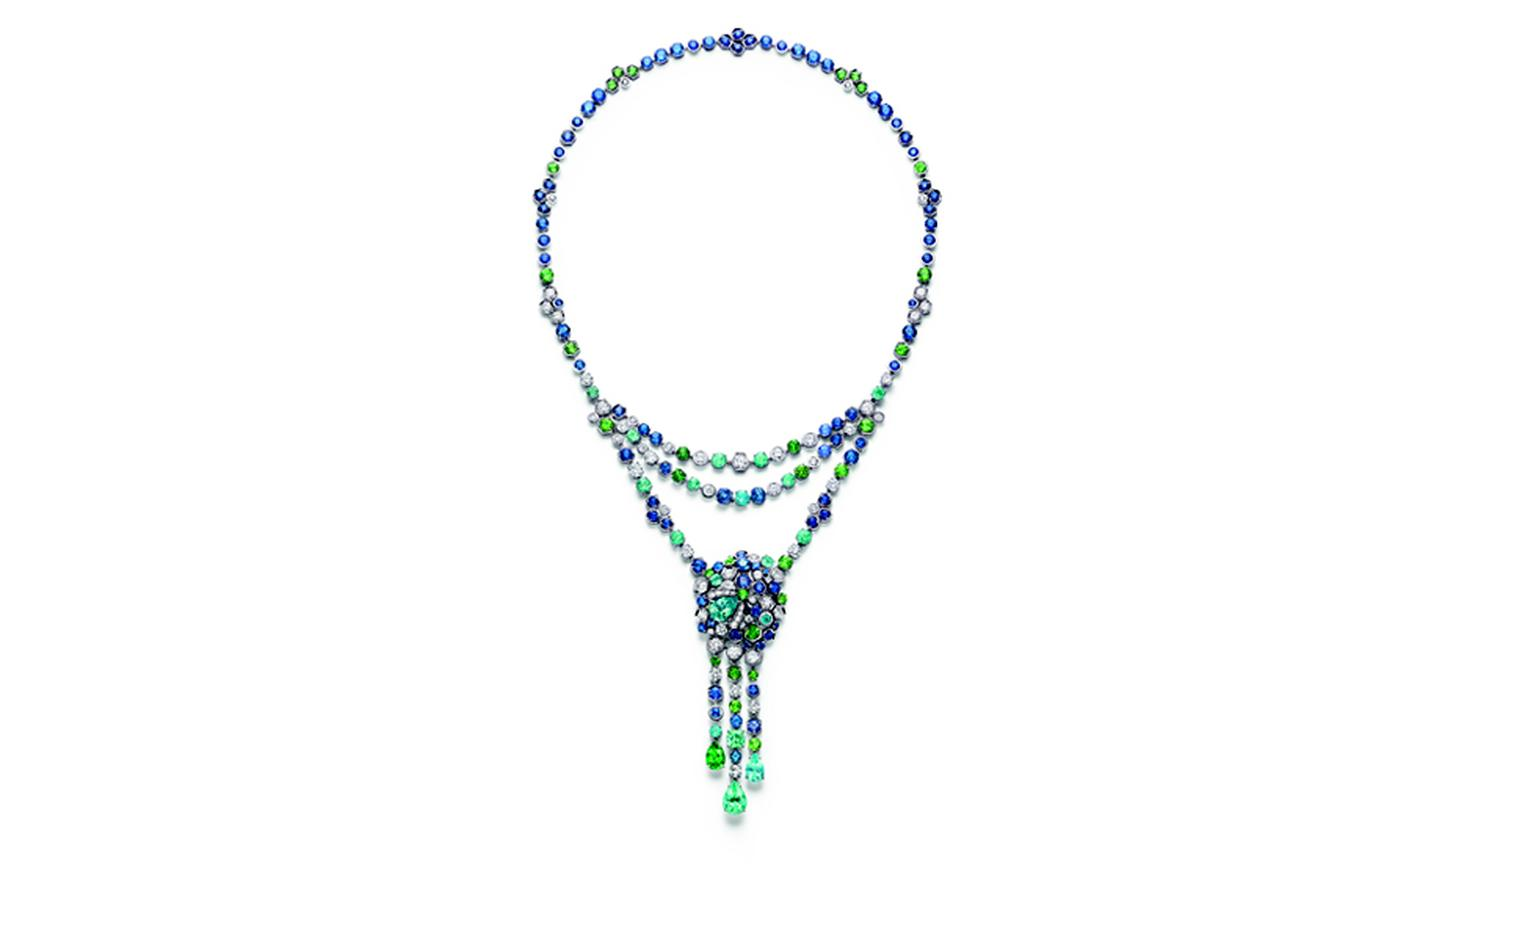 Chaumet Bee My Love necklace with diamonds, tourmalines, tsavorite garnets and sapphires cascades down the neck. The two outer pendant drops can be detached and worn as earrings.  e